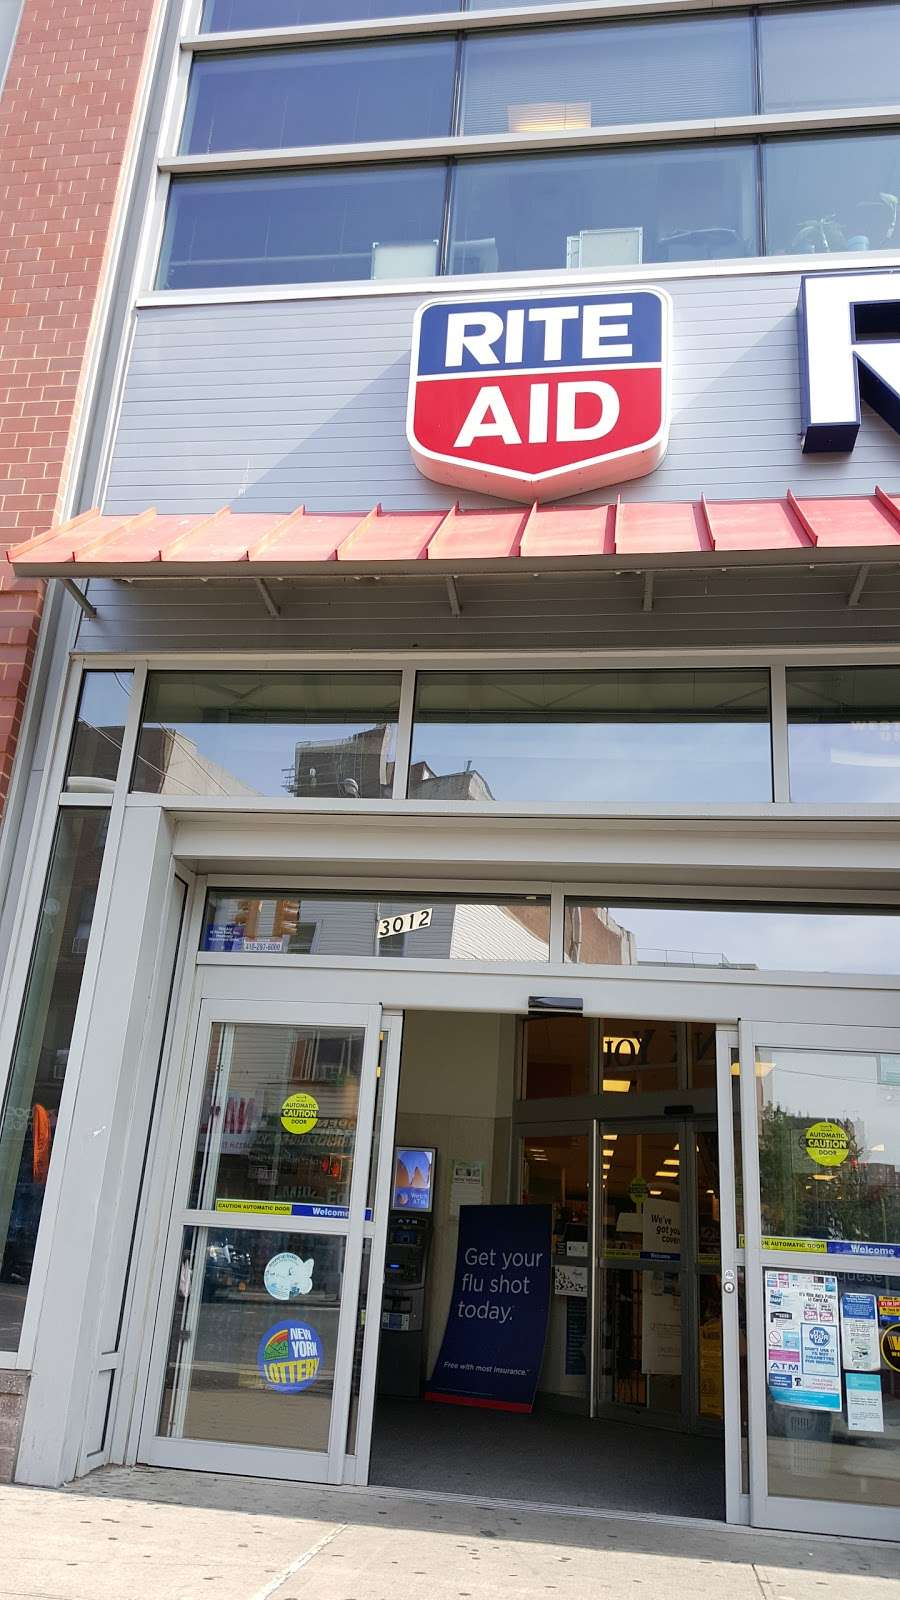 Rite Aid - convenience store  | Photo 3 of 9 | Address: 3012 Third Ave, Bronx, NY 10455, USA | Phone: (718) 665-6506